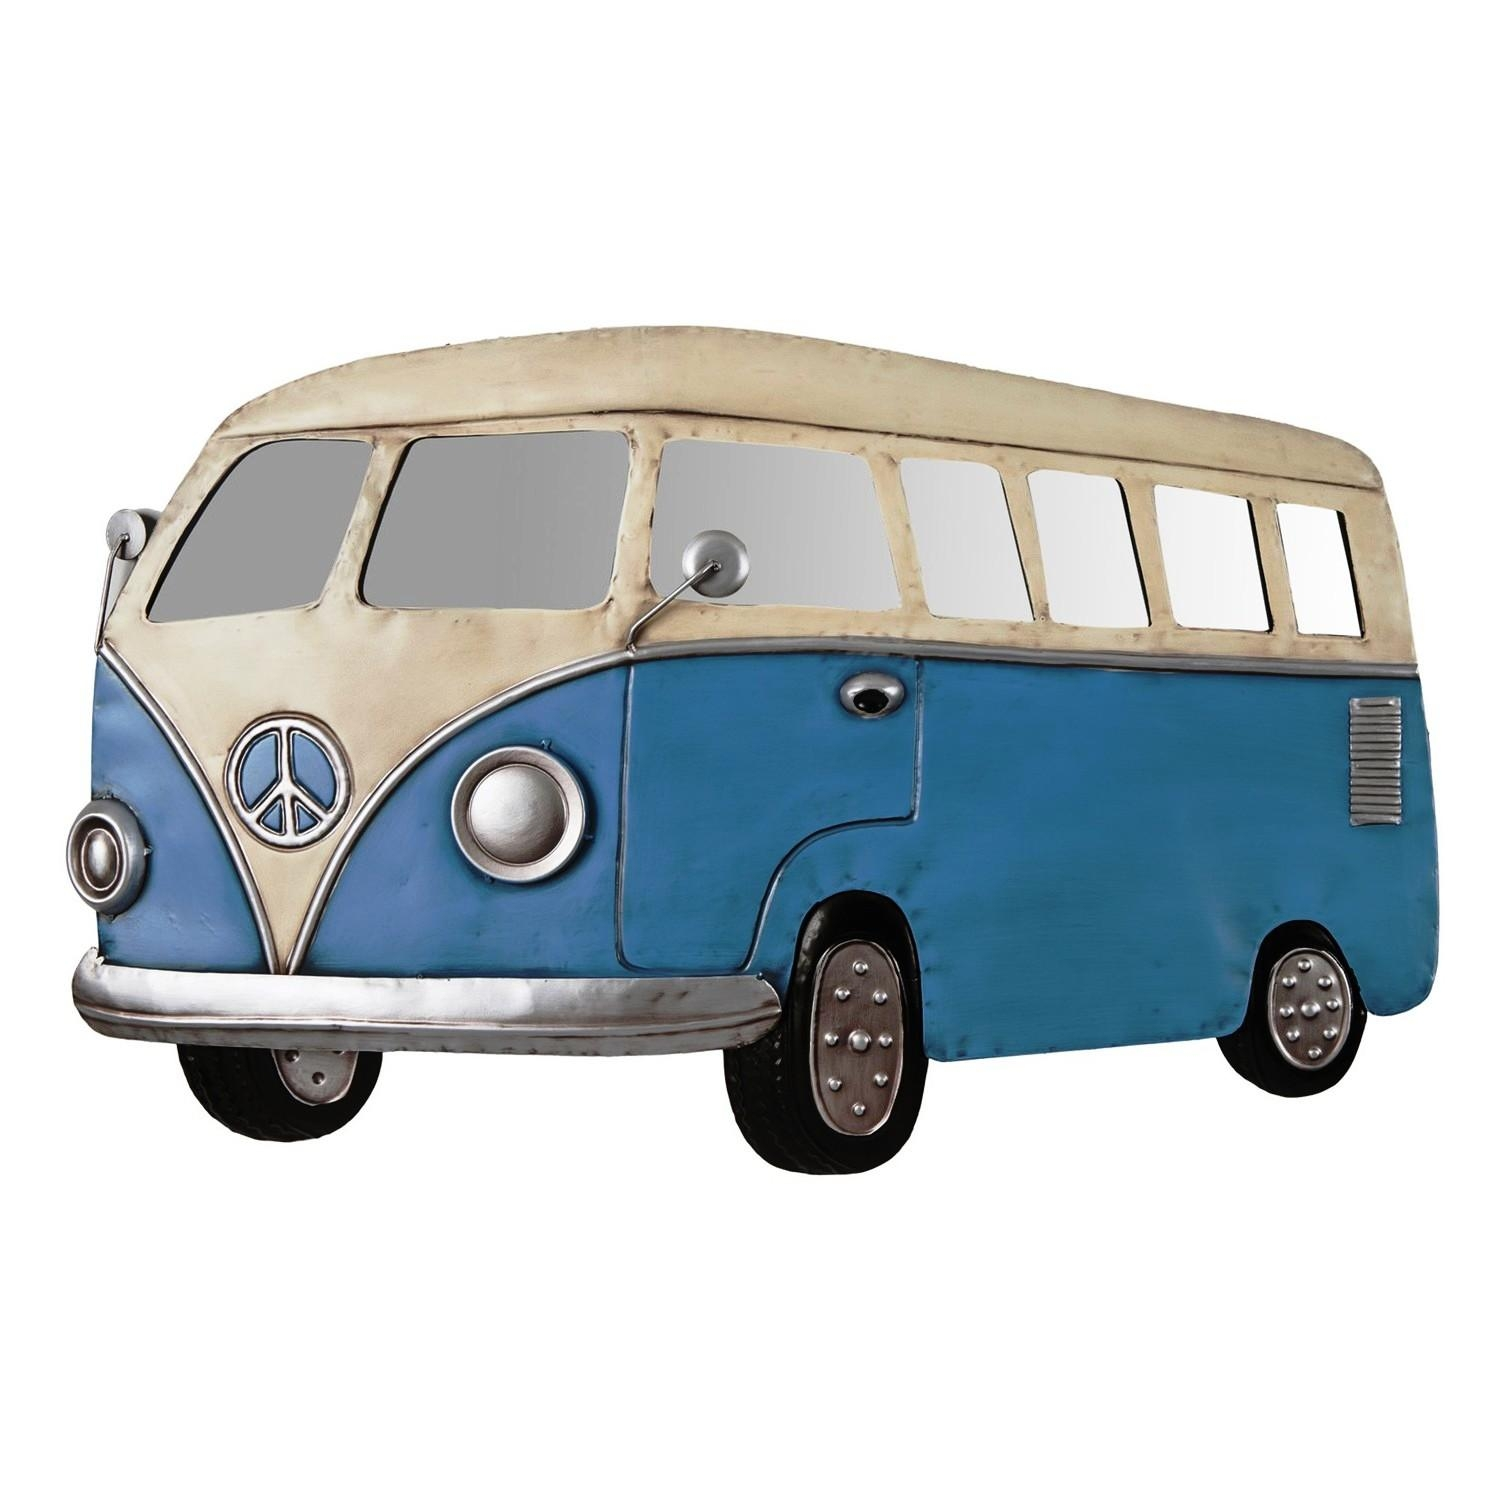 Metal Wall Art Retro Camper Van | Decorcave For Campervan Metal Wall Art (Image 9 of 20)